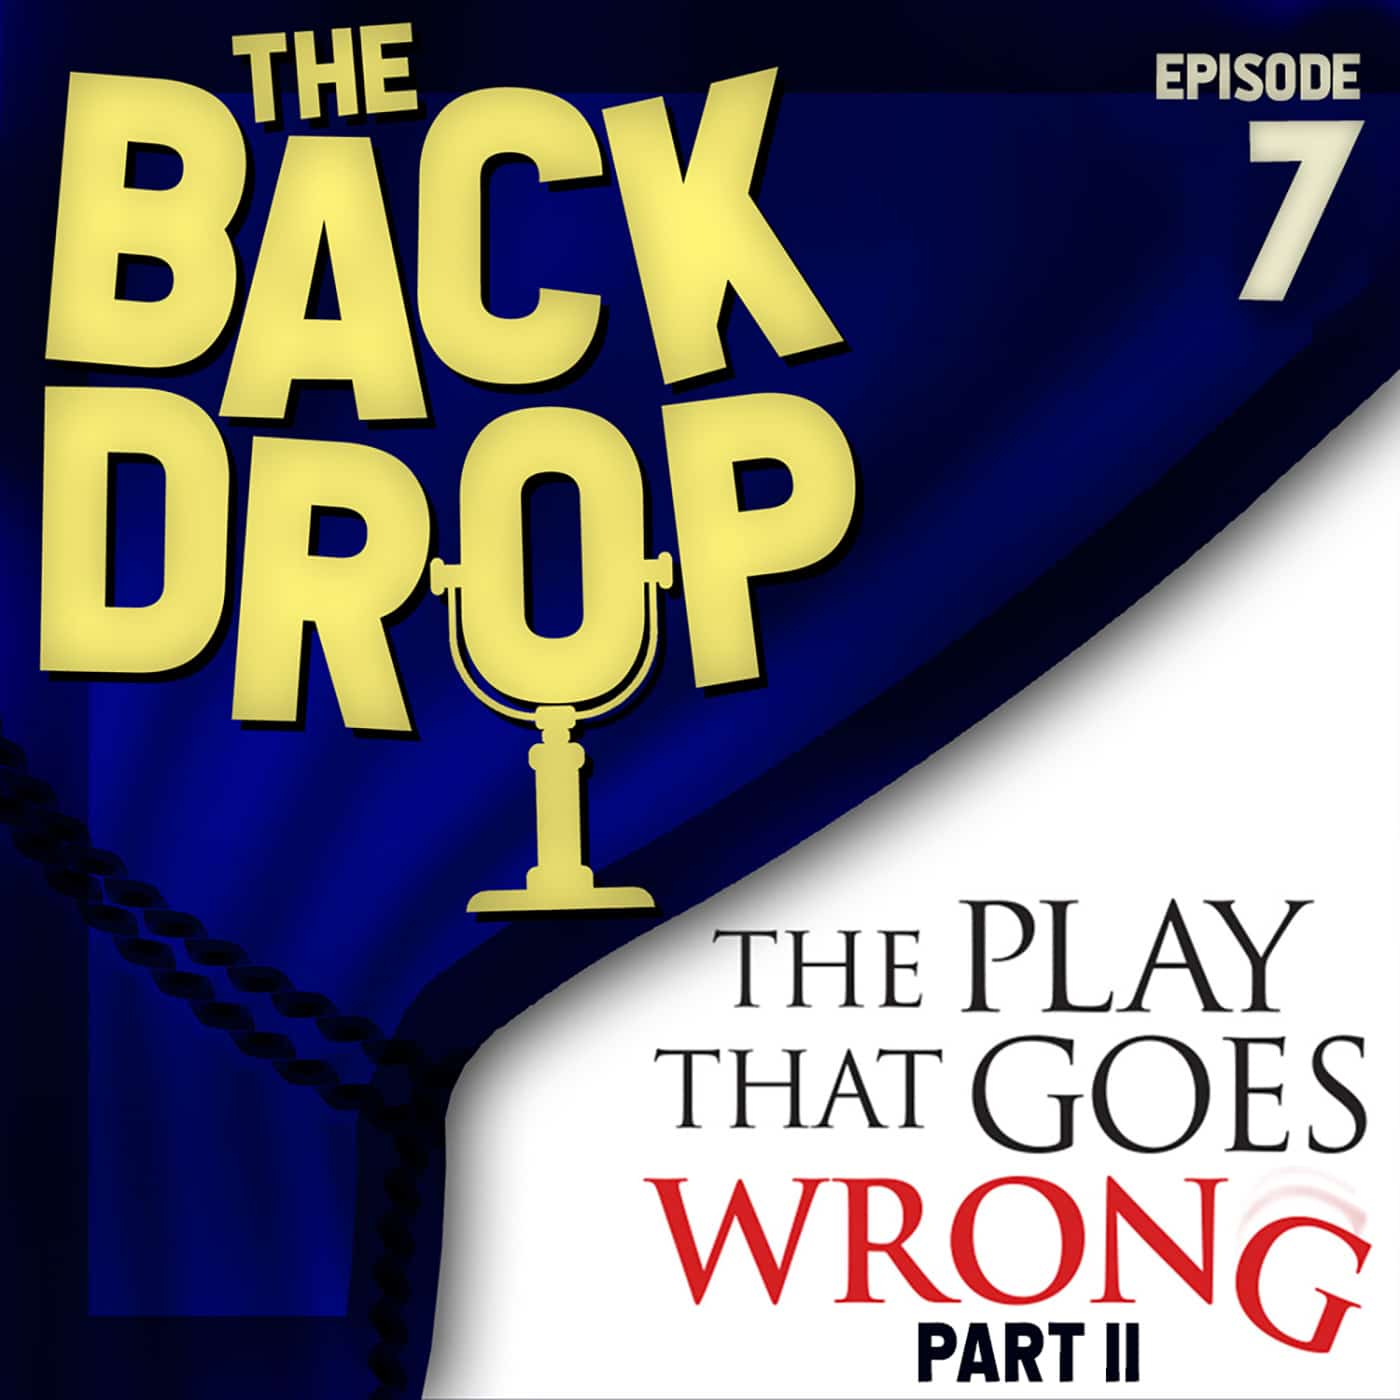 The Backdrop Episode 7 Kevin Bleyer The Play That Goes Wrong